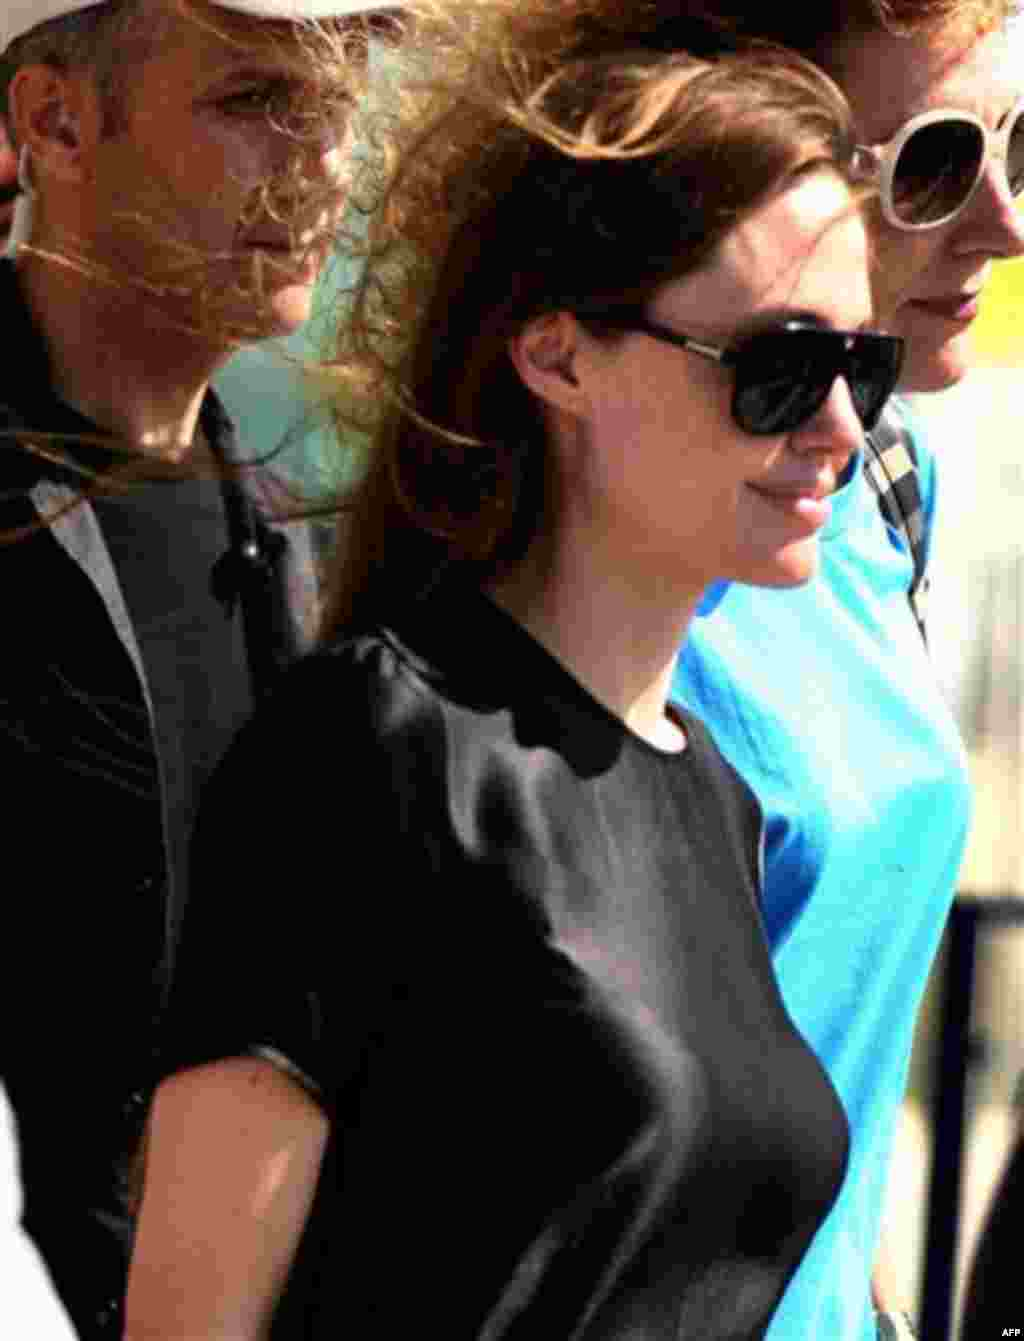 American actress and Goodwill Ambassador for the United Nations High Commissioner for Refugees (UNHCR) Angelina Jolie arrives at Hatay's airport in Turkey on Friday June 17, 2011. Jolie traveled to Turkey's border with Syria to meet some of the thousands